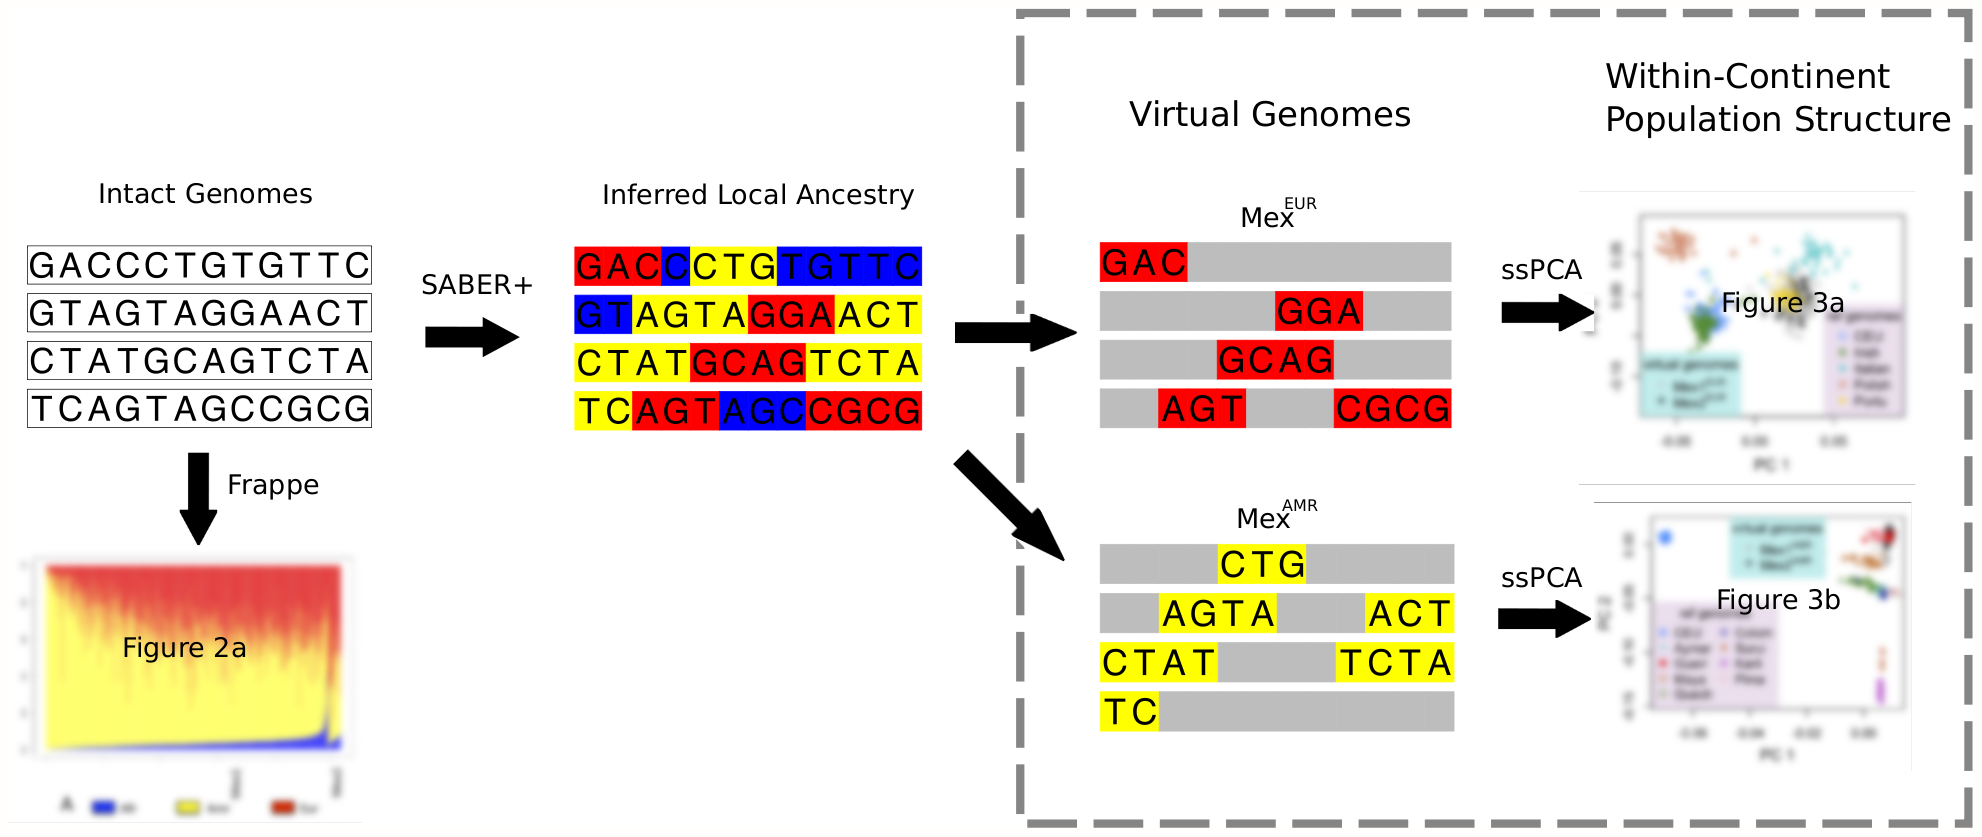 Schematic describing the analytic framework for characterizing continental-level and within-continent populations structure in an admixed population.